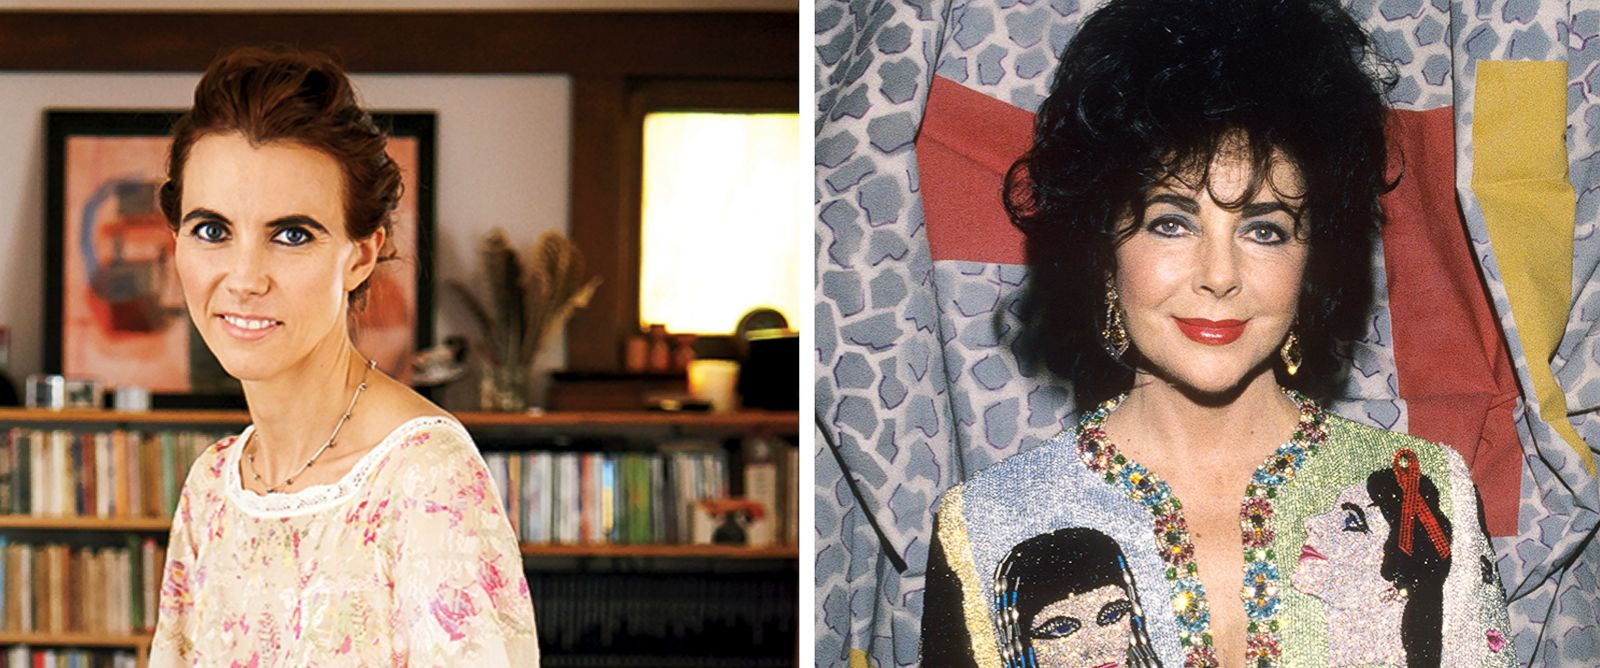 PHOTO: Naomi deLuce Wilding, seen left in a photo from the May 2014 issue of Glamour, is the granddaughter of Elizabeth Taylor, seen right in this Nov. 16, 1991 file photo.